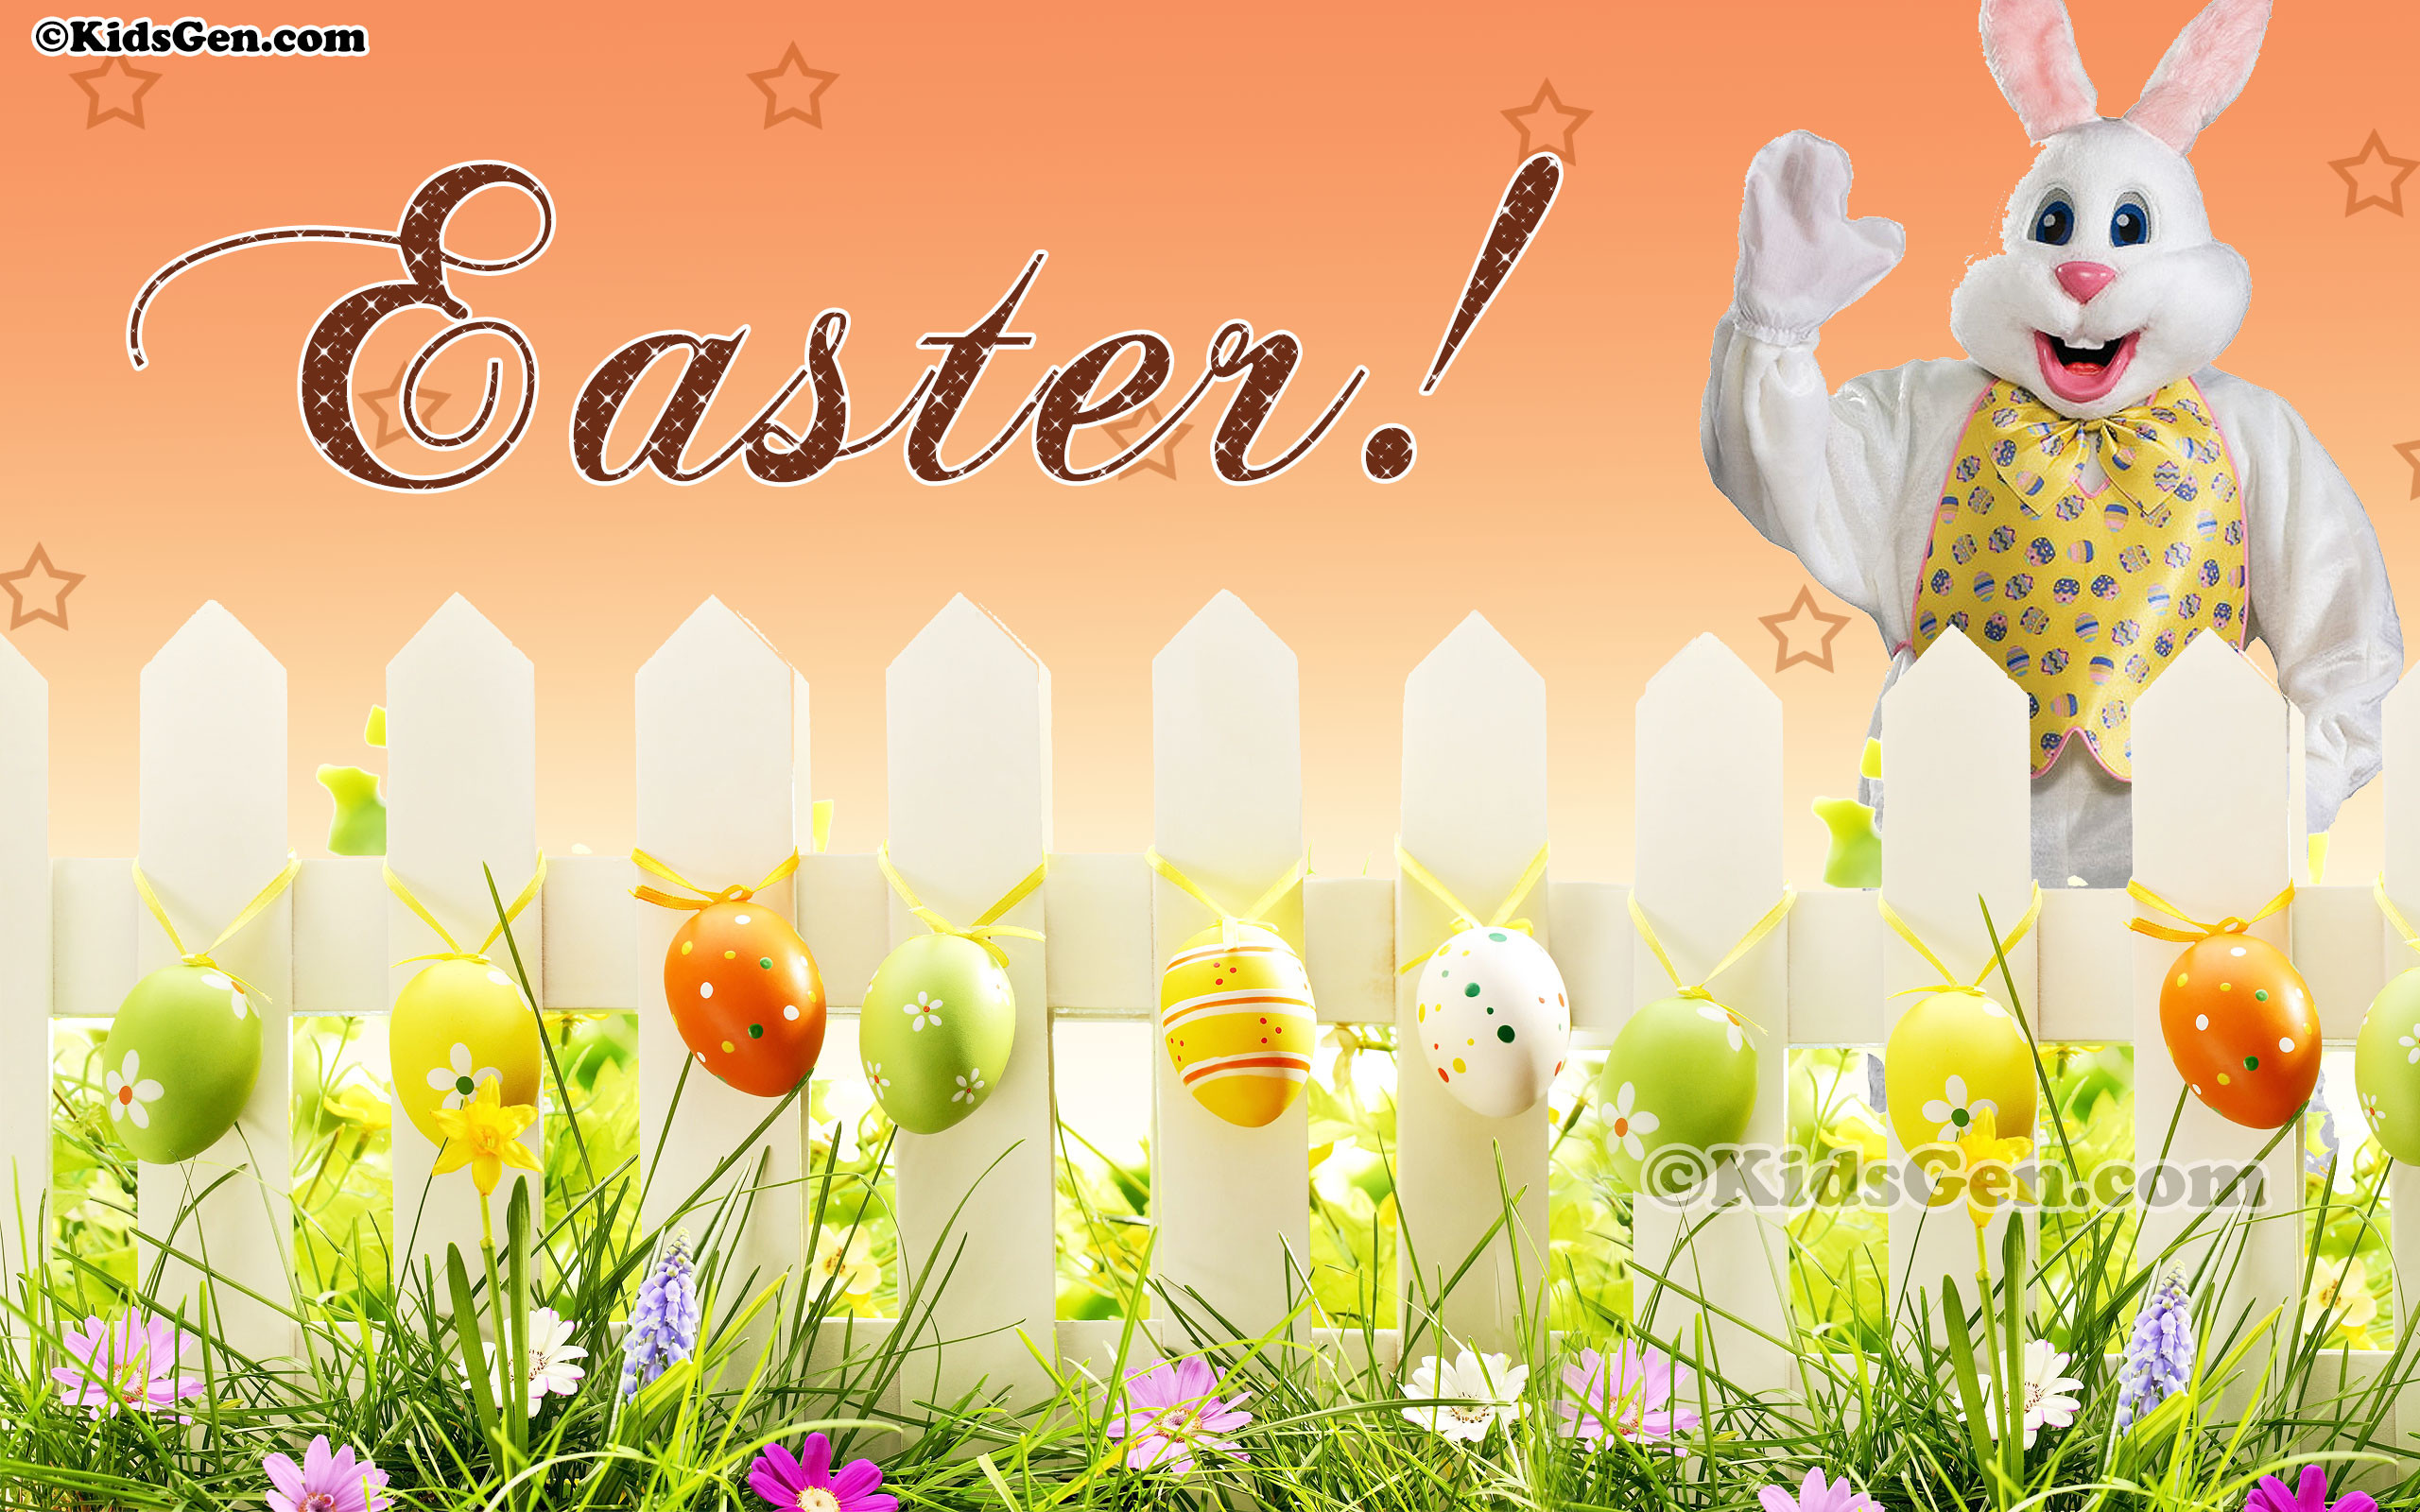 2560x1600 Wallpaper of Easter Bunny and eggs